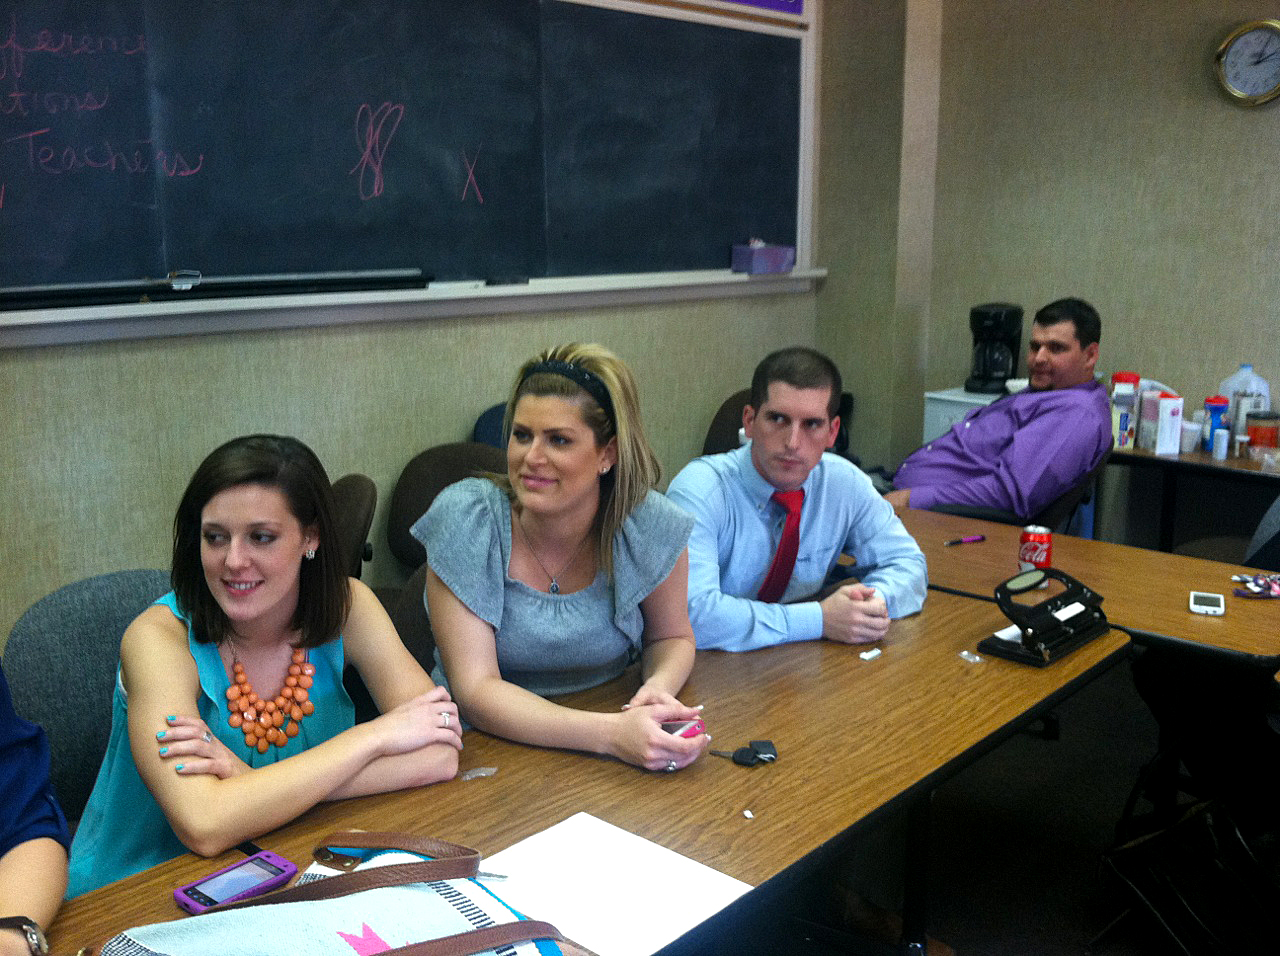 Student Teachers hear about how to utilize social media appropriately. (Photo courtesy of Bree Kingston)